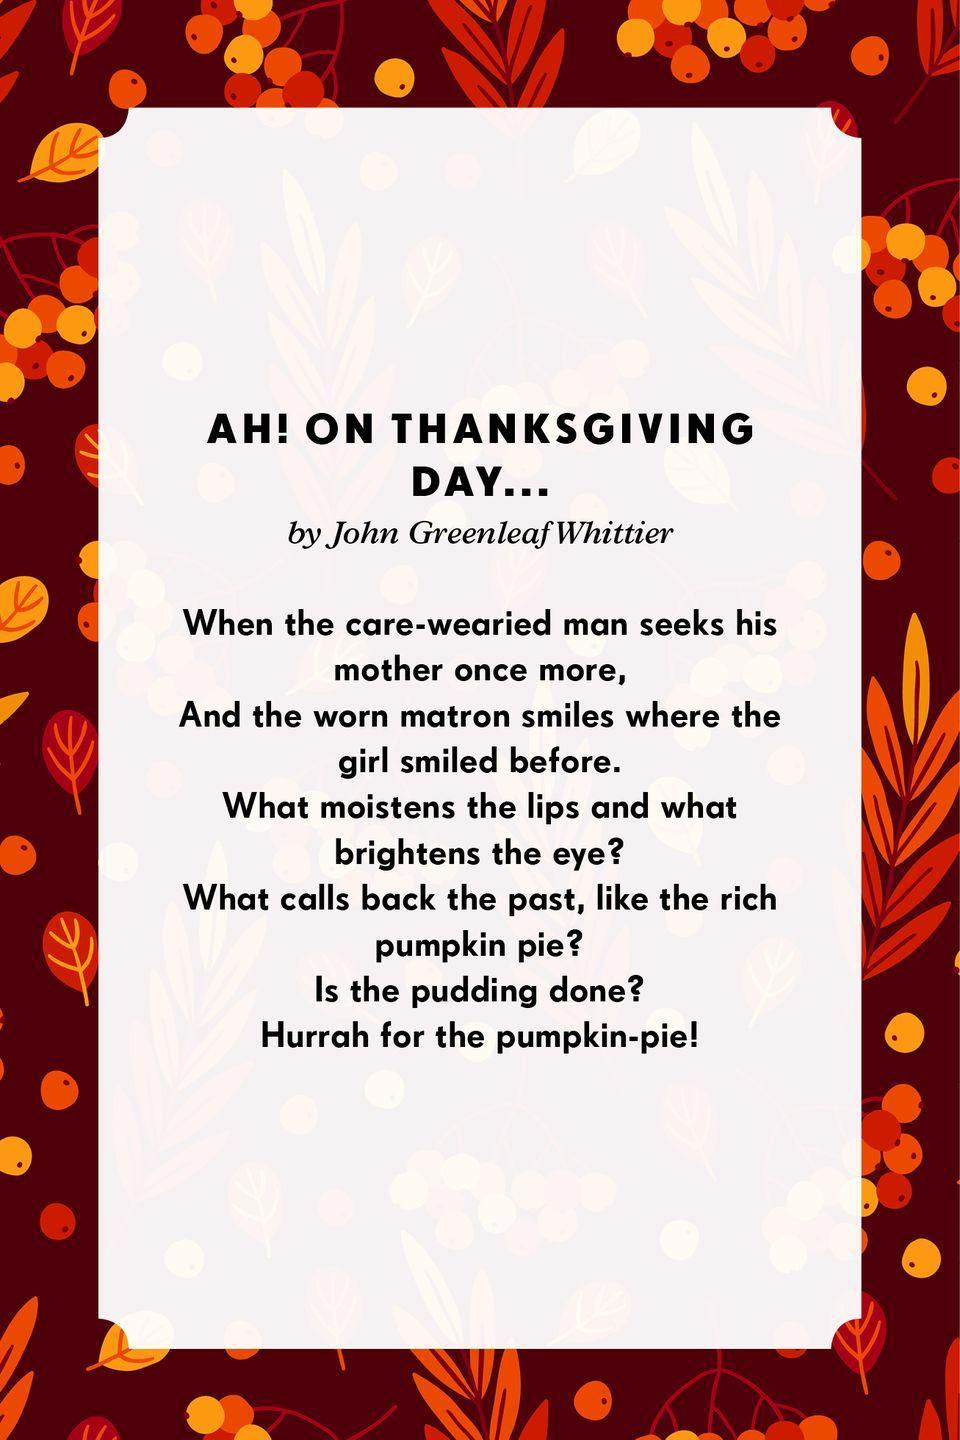 <p><strong>Ah! on Thanksgiving day ...</strong></p><p>When the care-wearied man seeks his mother once more,<br>And the worn matron smiles where the girl smiled before.<br>What moistens the lips and what brightens the eye?<br>What calls back the past, like the rich pumpkin pie?</p>